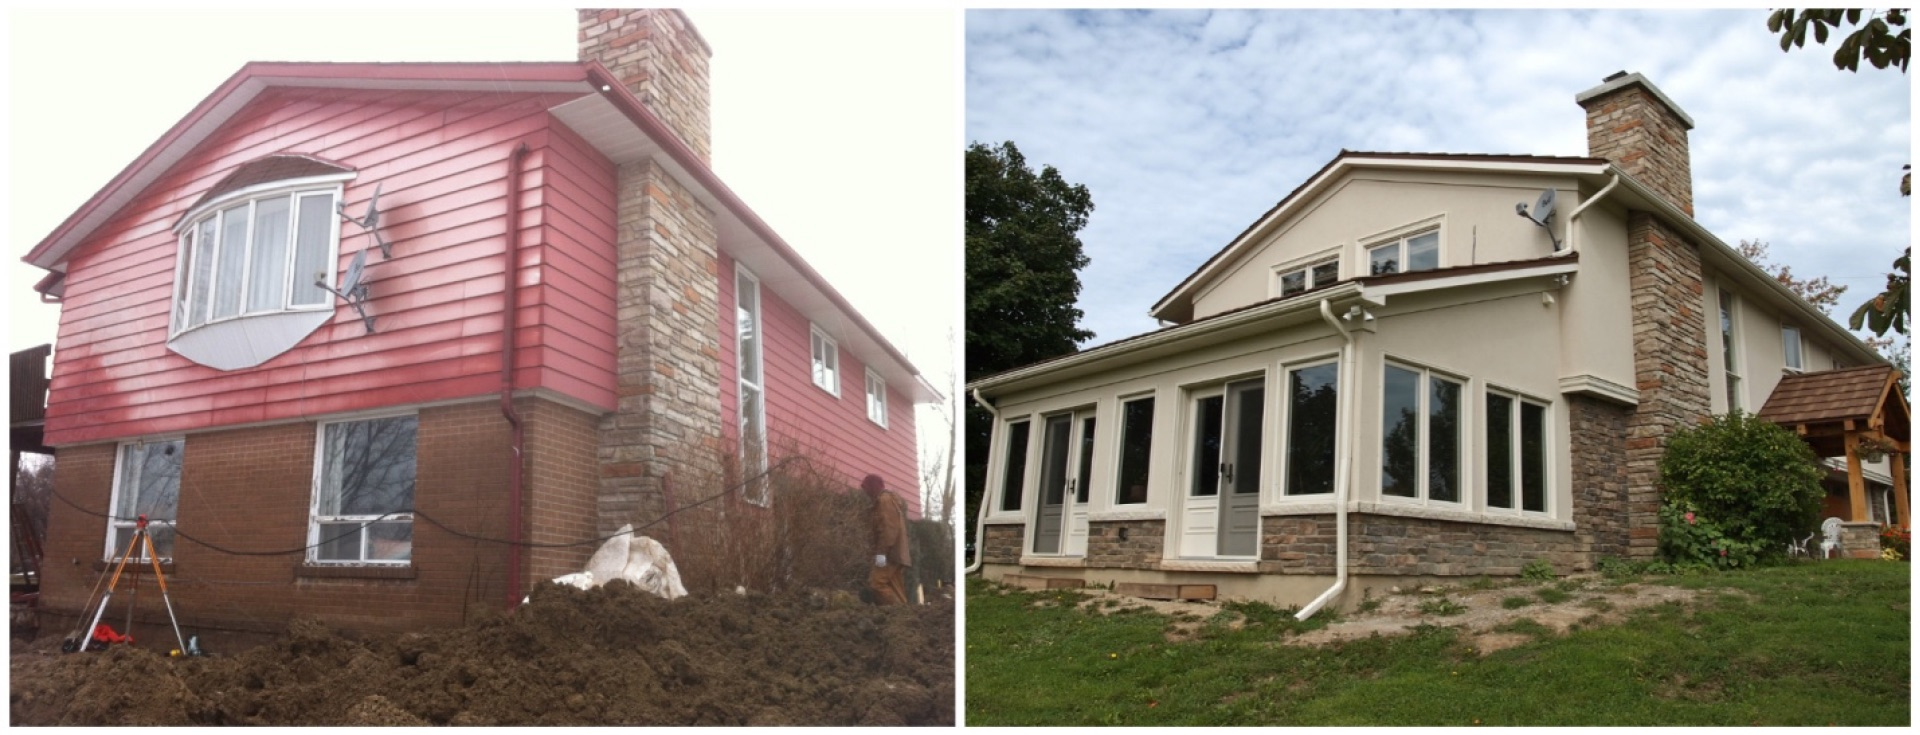 Before and after sunroom addition stucco.jpg